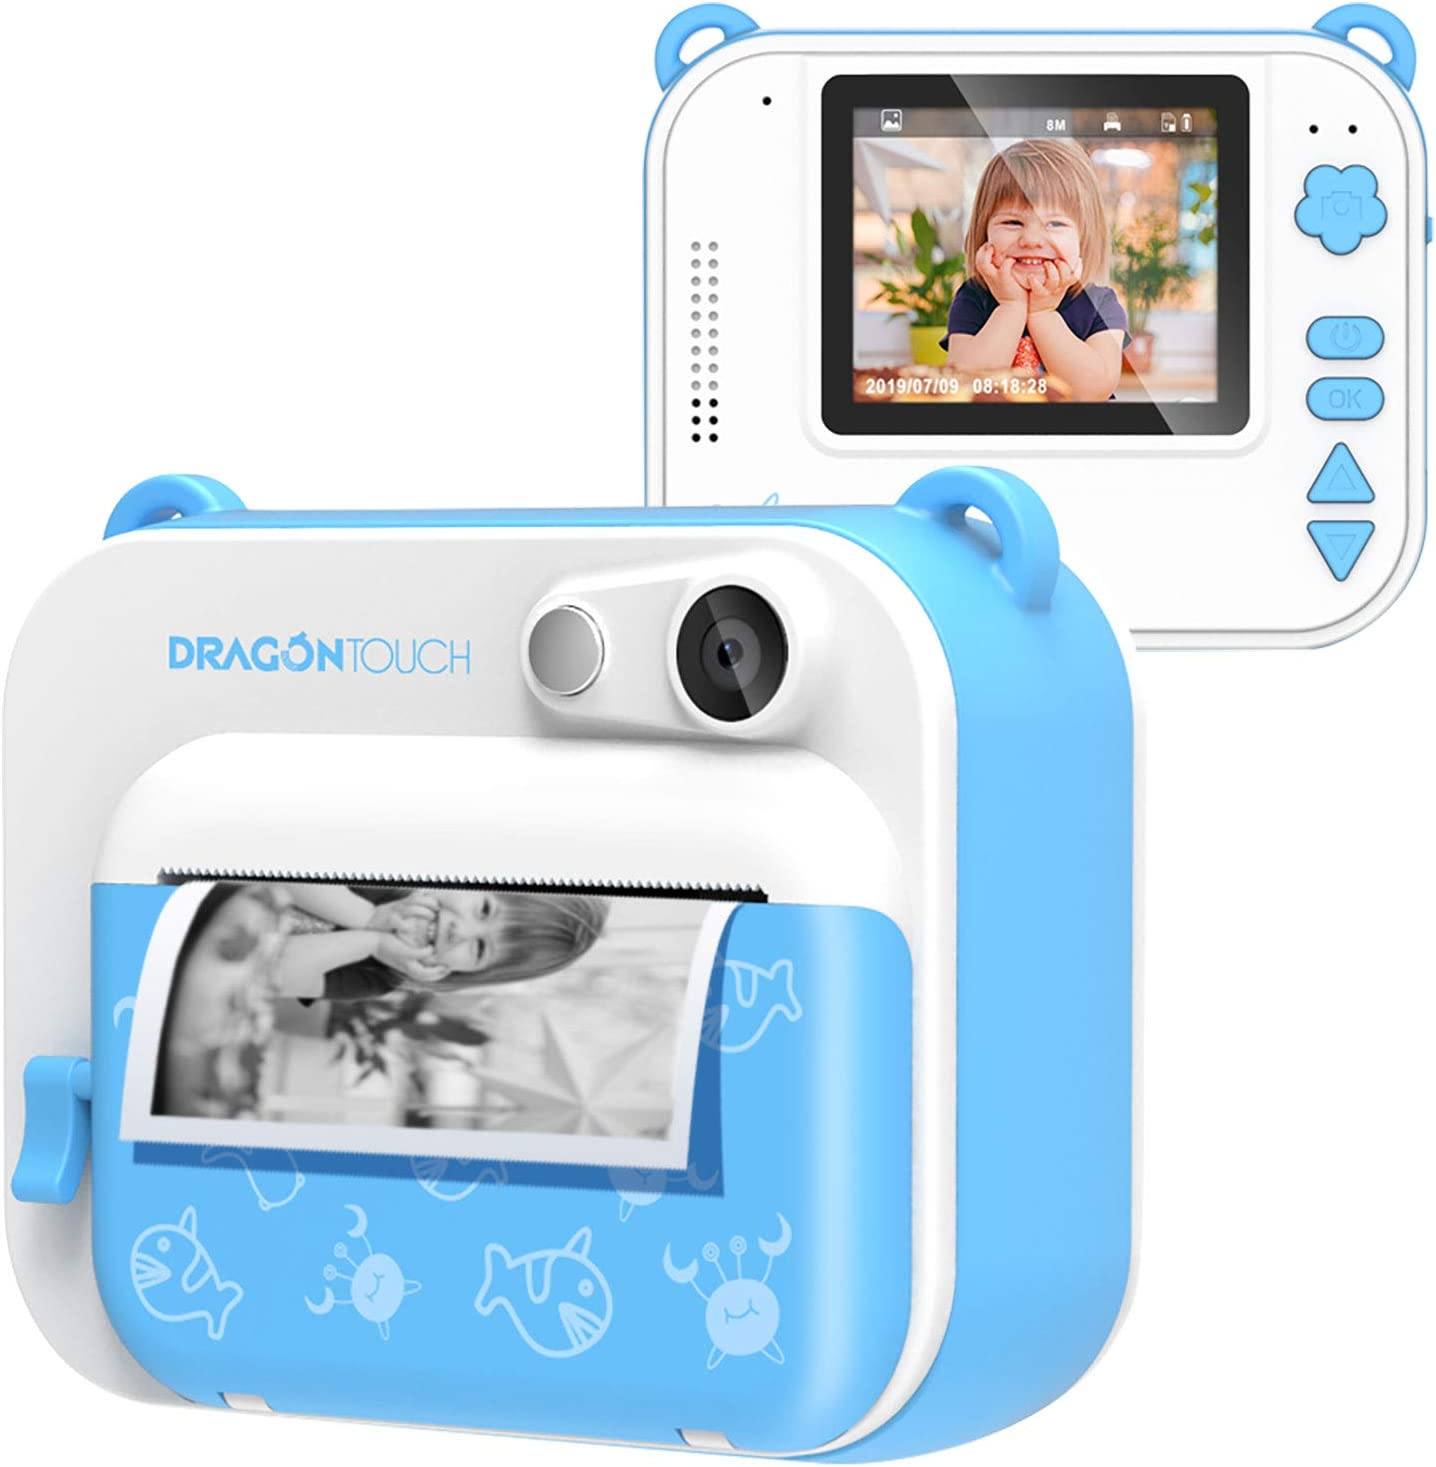 Dragon Touch InstantFun Instant Print Camera for Kids, Zero Ink Toy Camera with PrintPaper, CartoonSticker, ColorPencils, Portable Digital Creative Print Camera for Boys and Girls - Blue